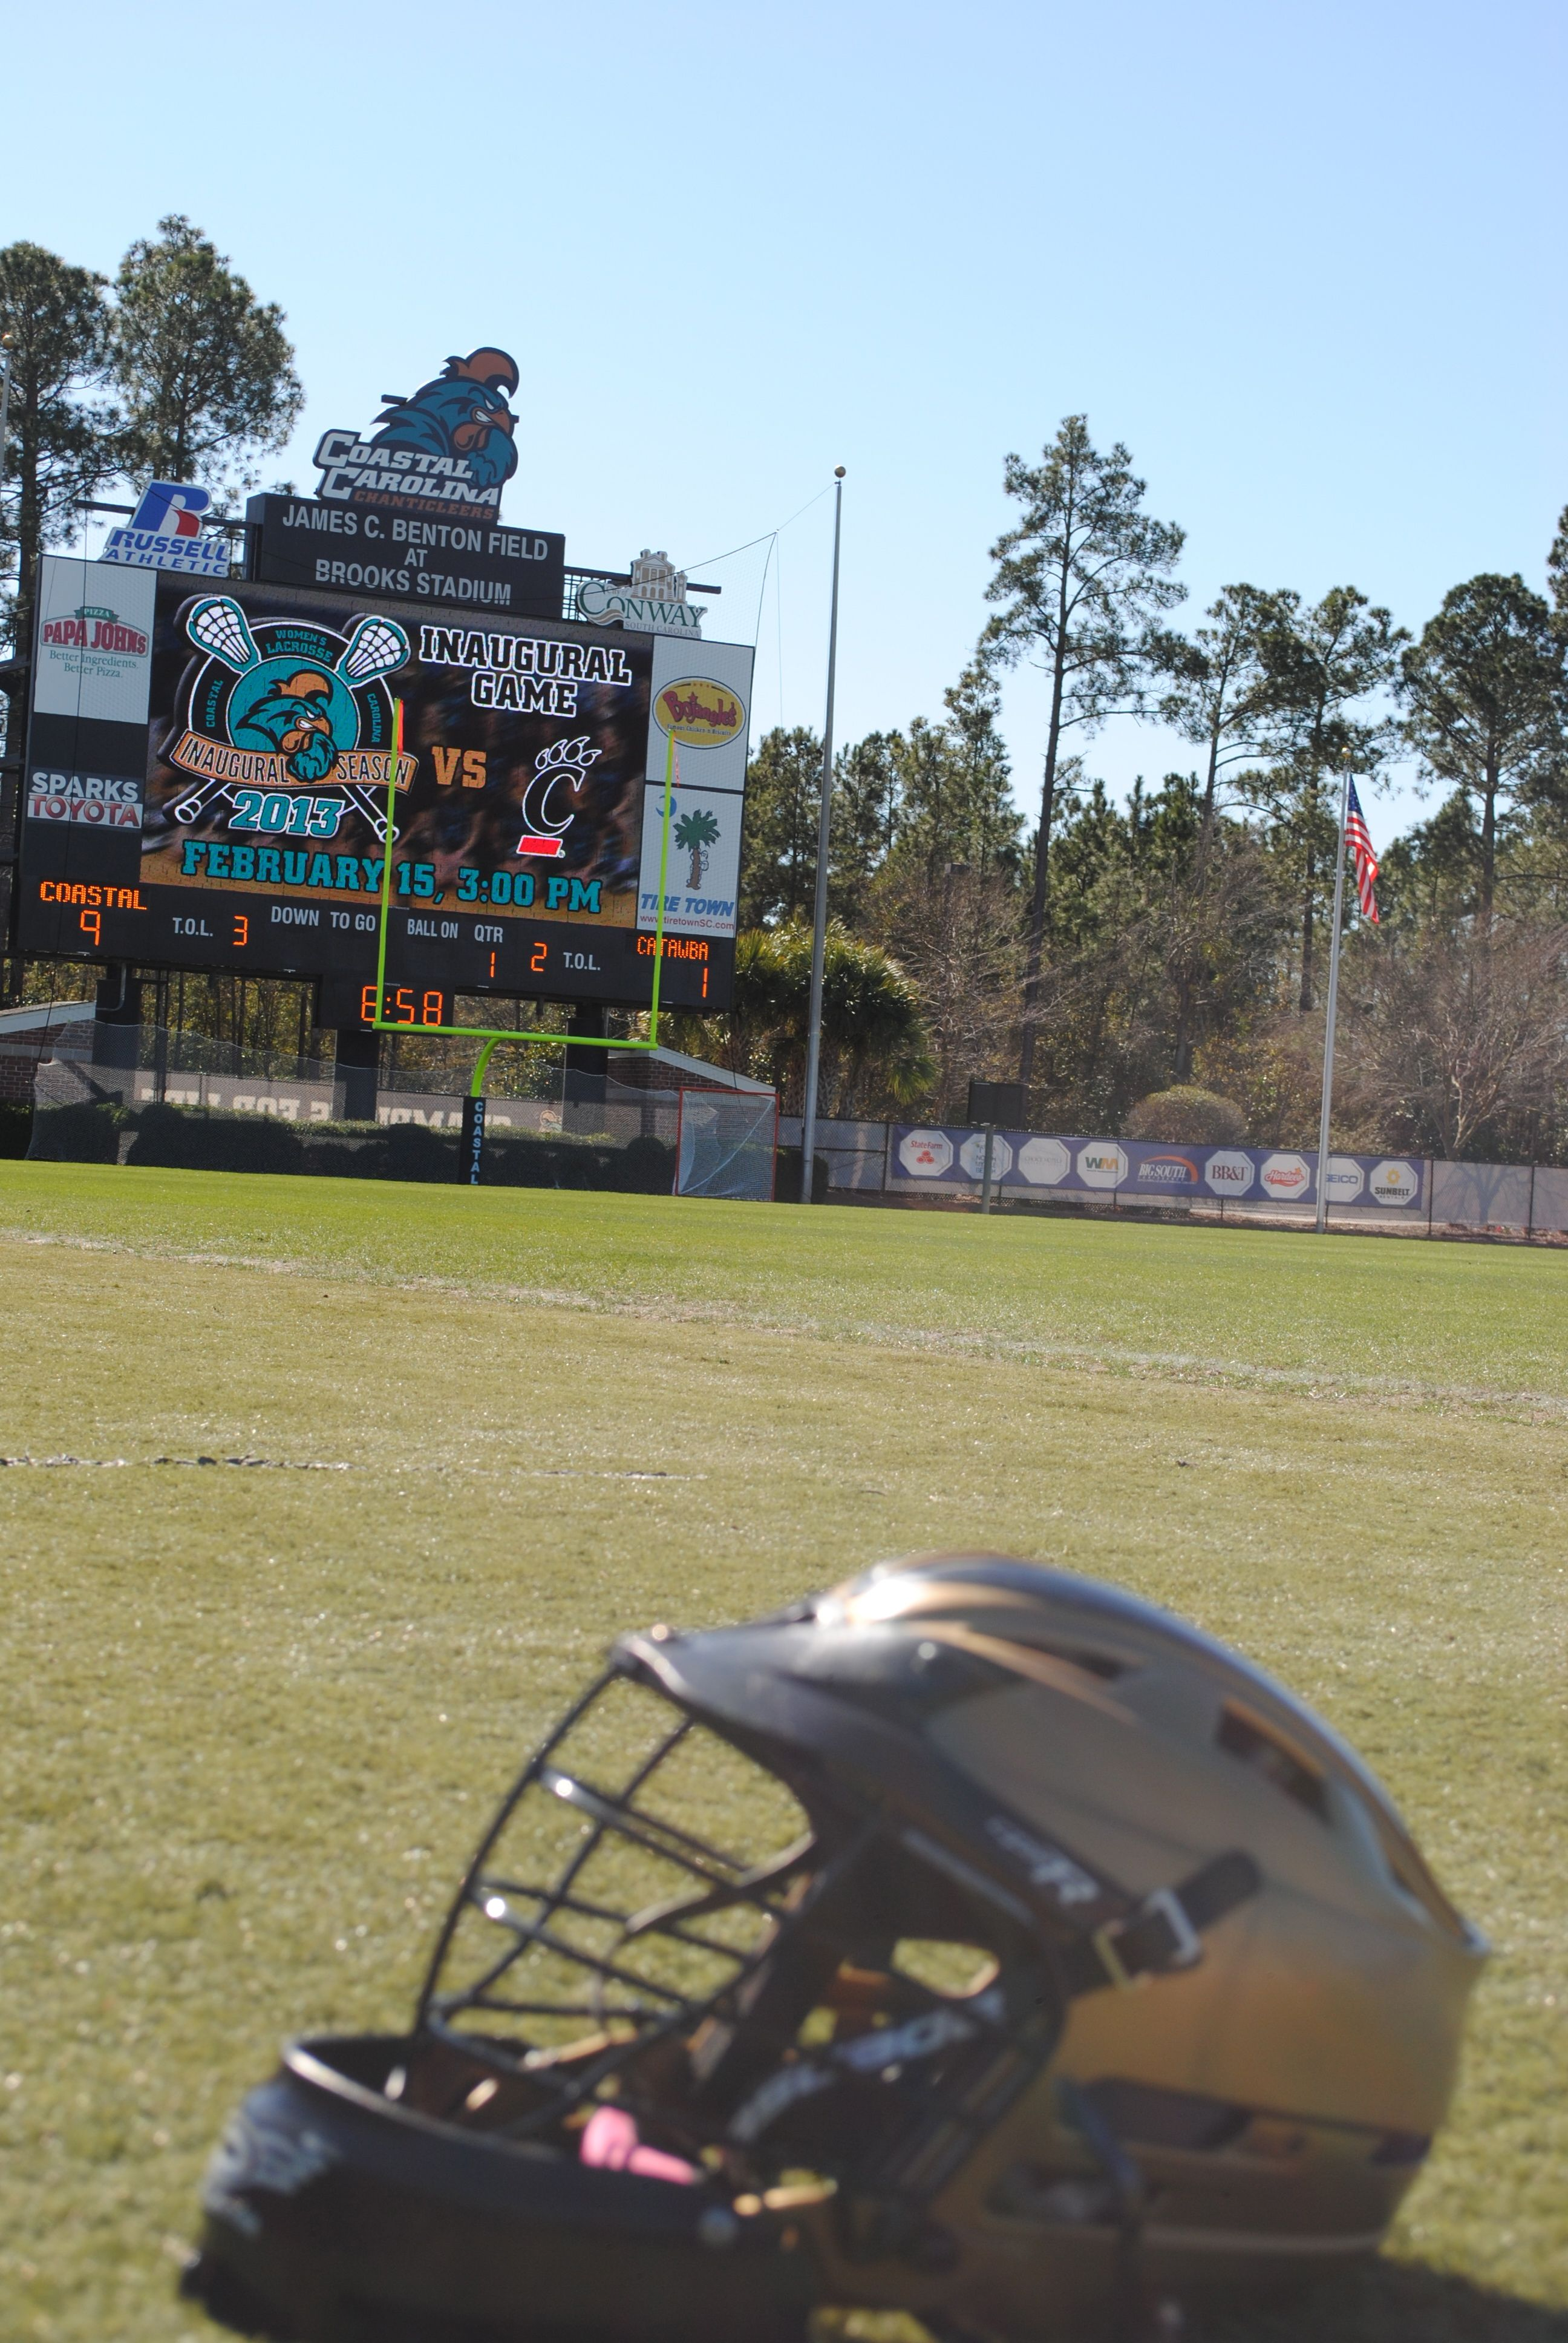 Teal and Bronze Womens lacrosse, Baseball field